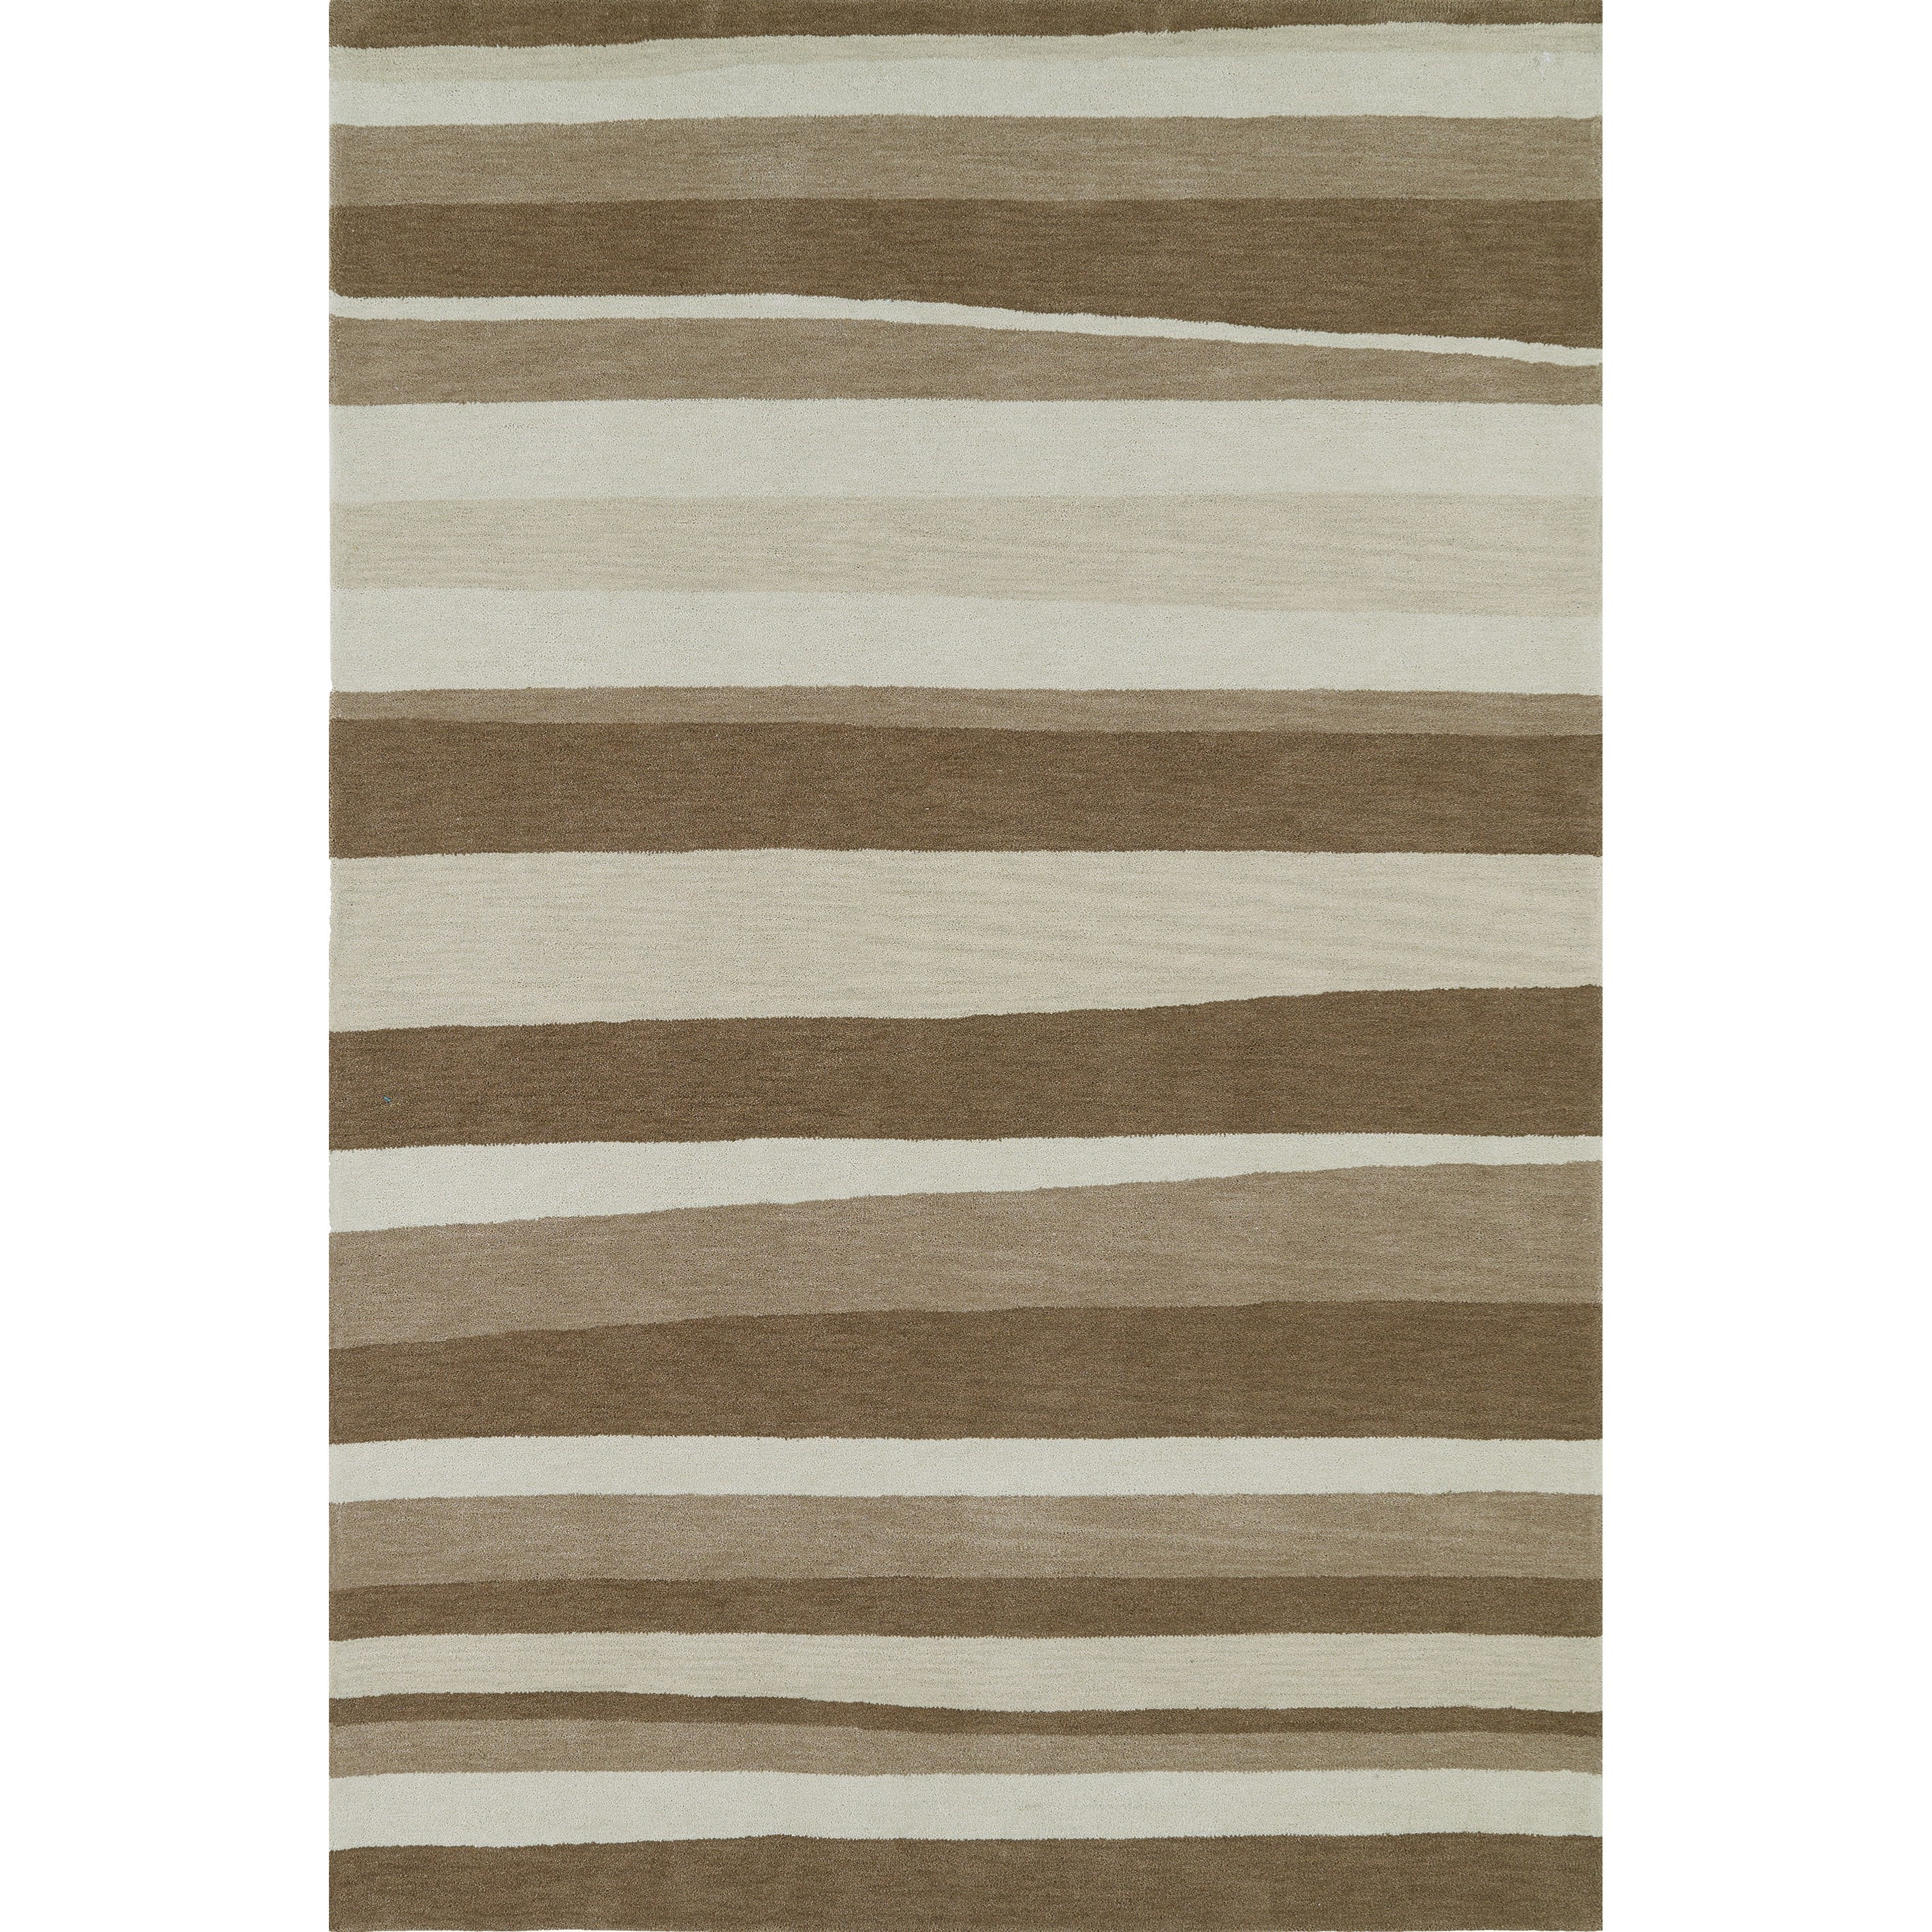 "Dalyn Aloft Taupe 5'X7'6"" Rug - Item Number: AL8TA5X8"